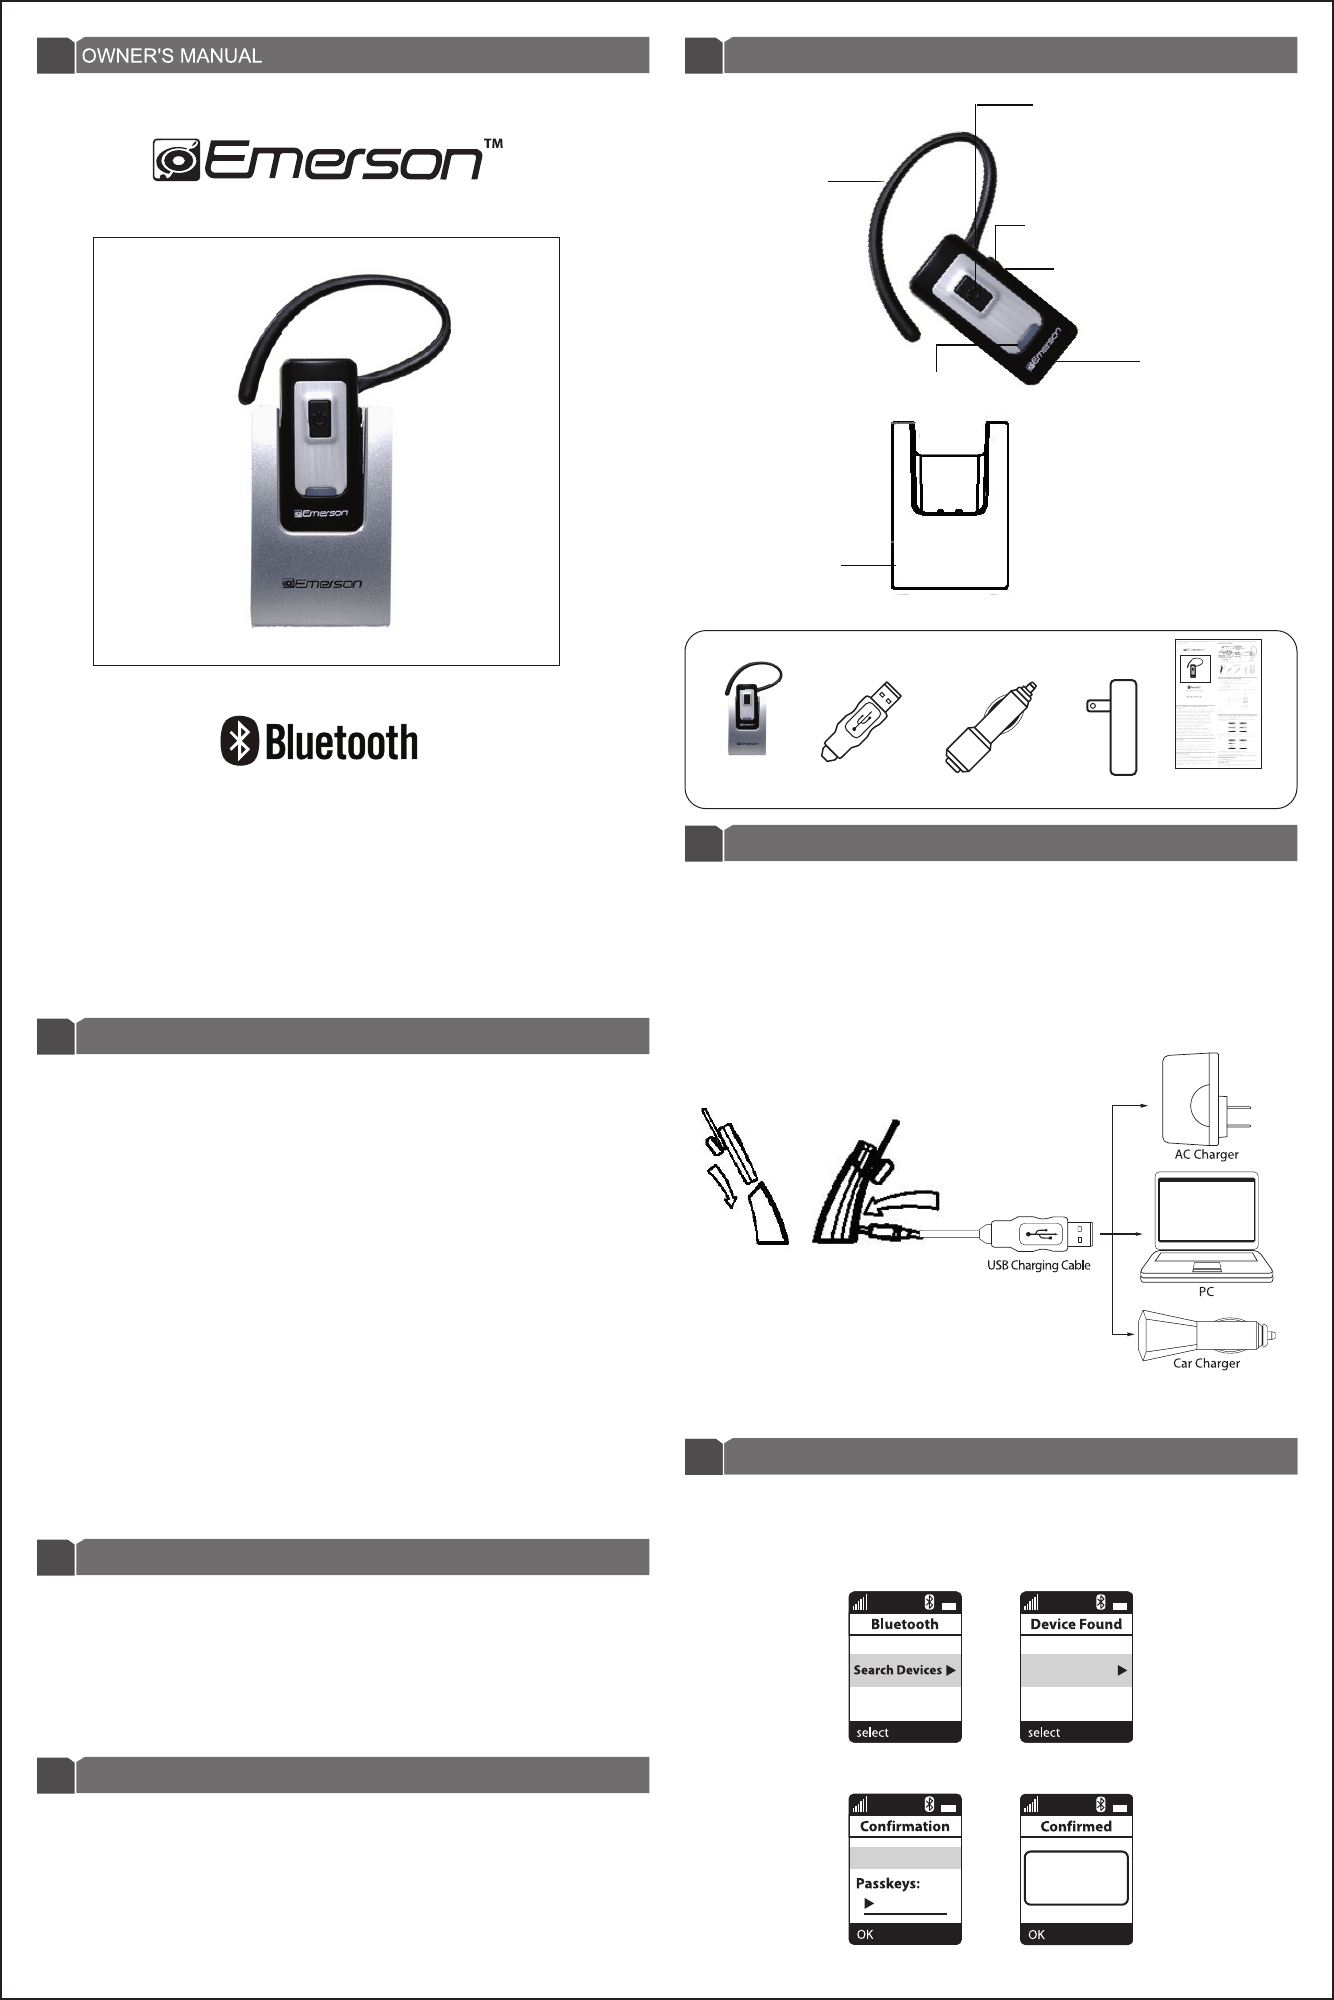 Emerson Bluetooth Headset EM-250 User Guide